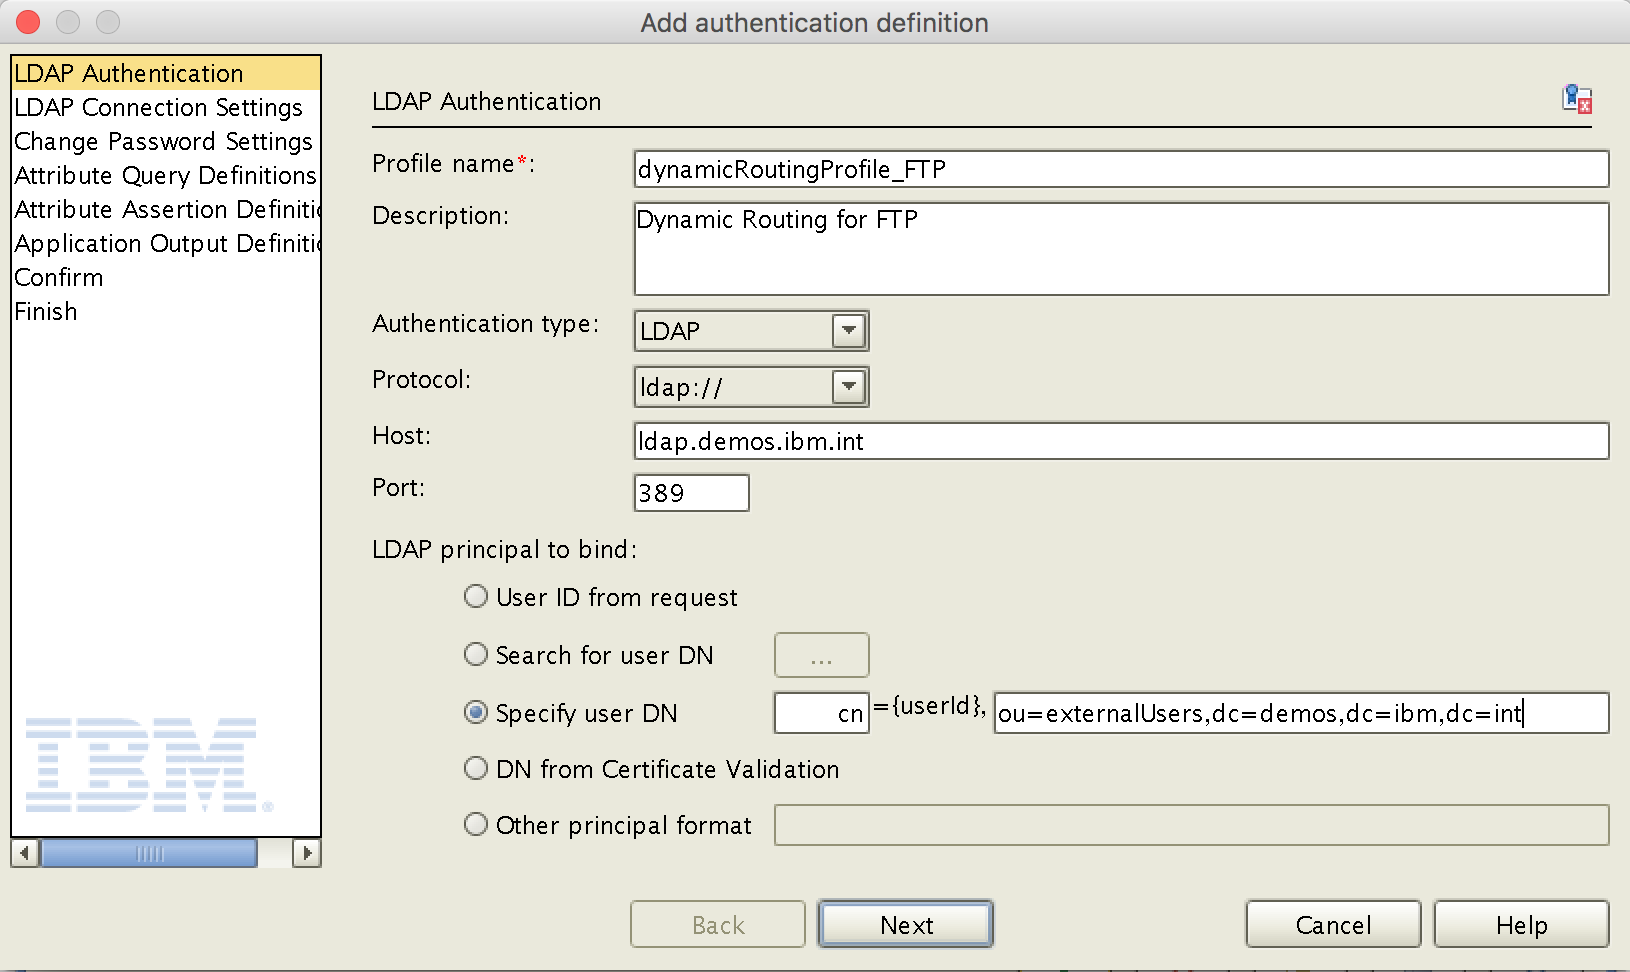 Authentication Definition - LDAP Authentication